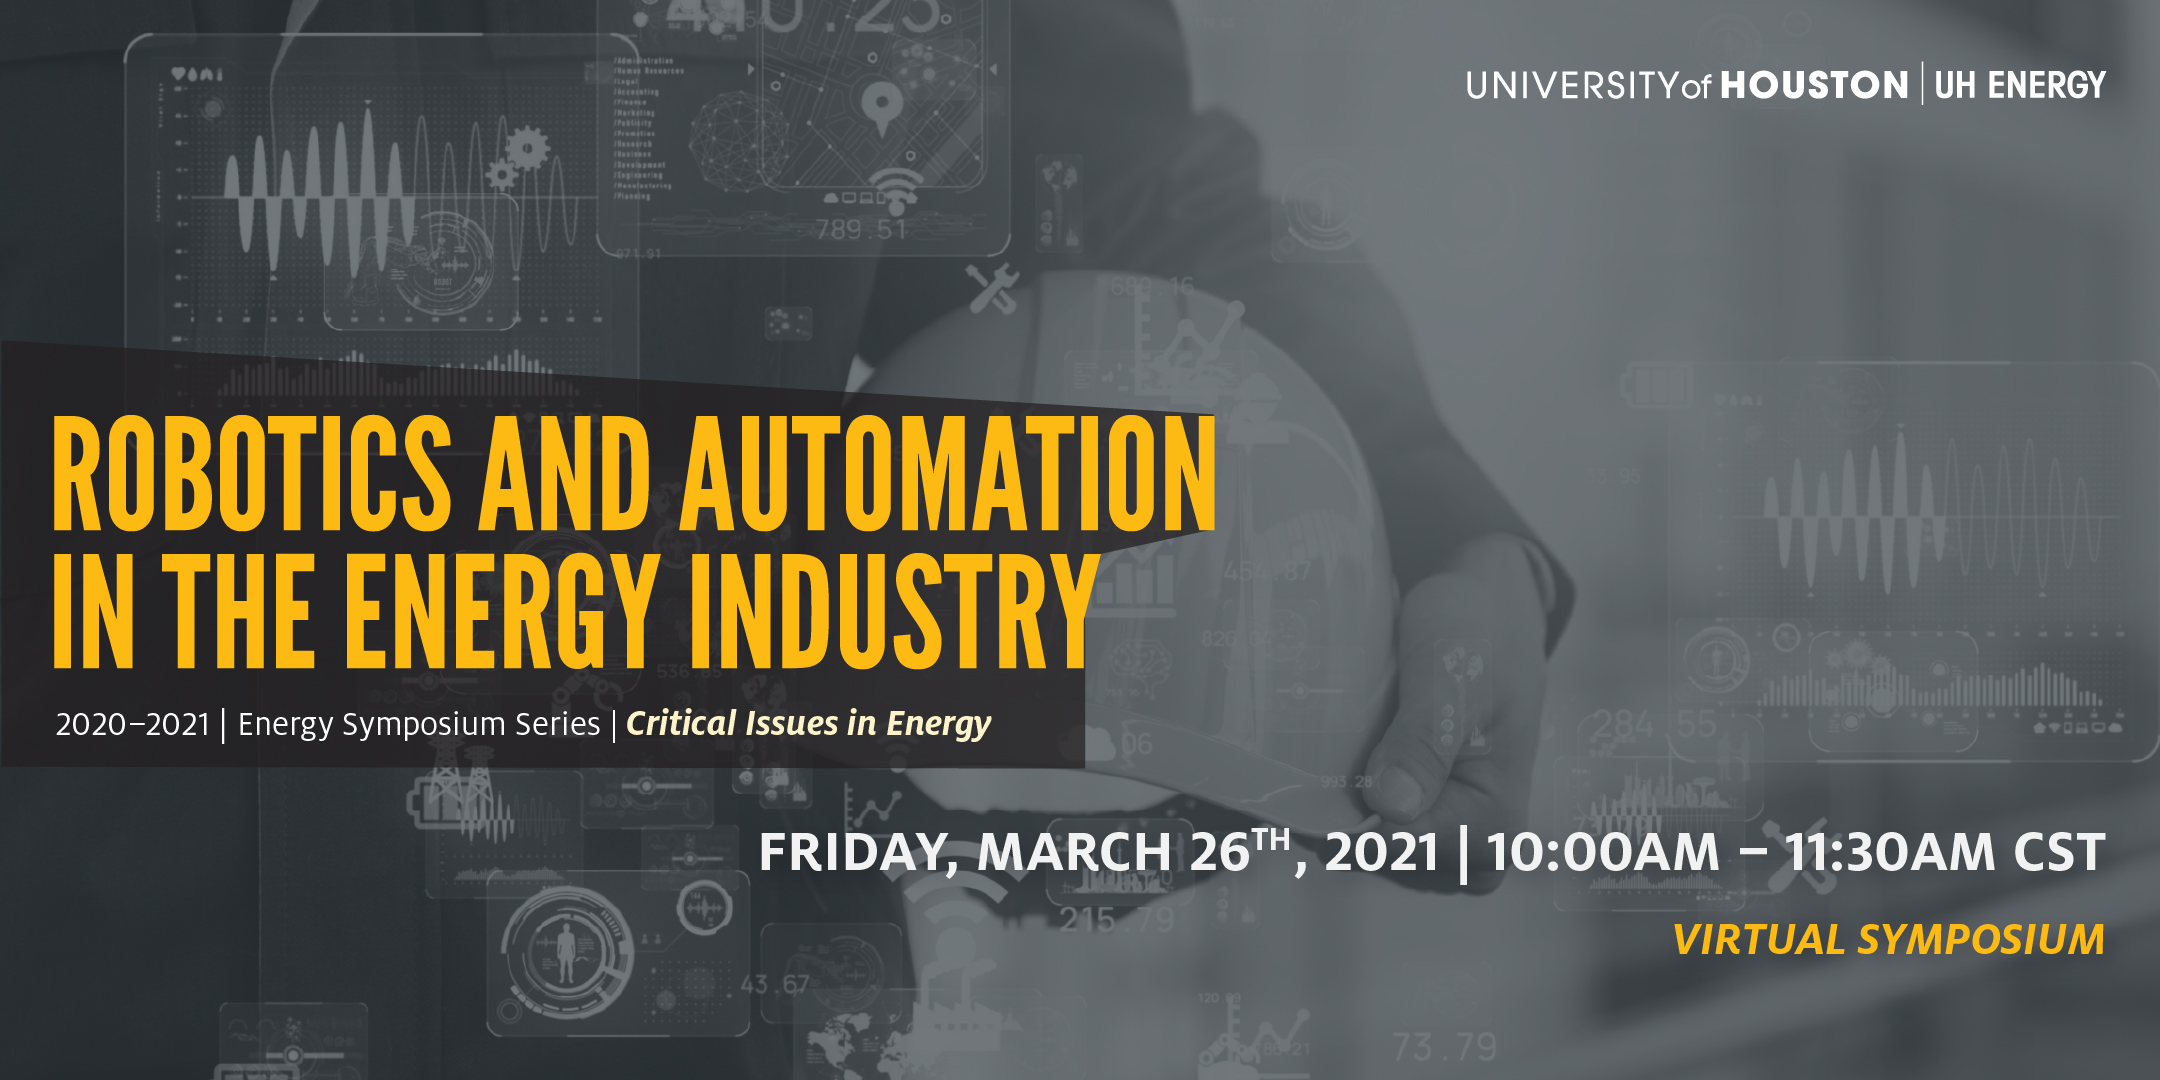 UH Energy Symposium Series: Robotics and Automation in the Energy Industry - Click here to visit this page.